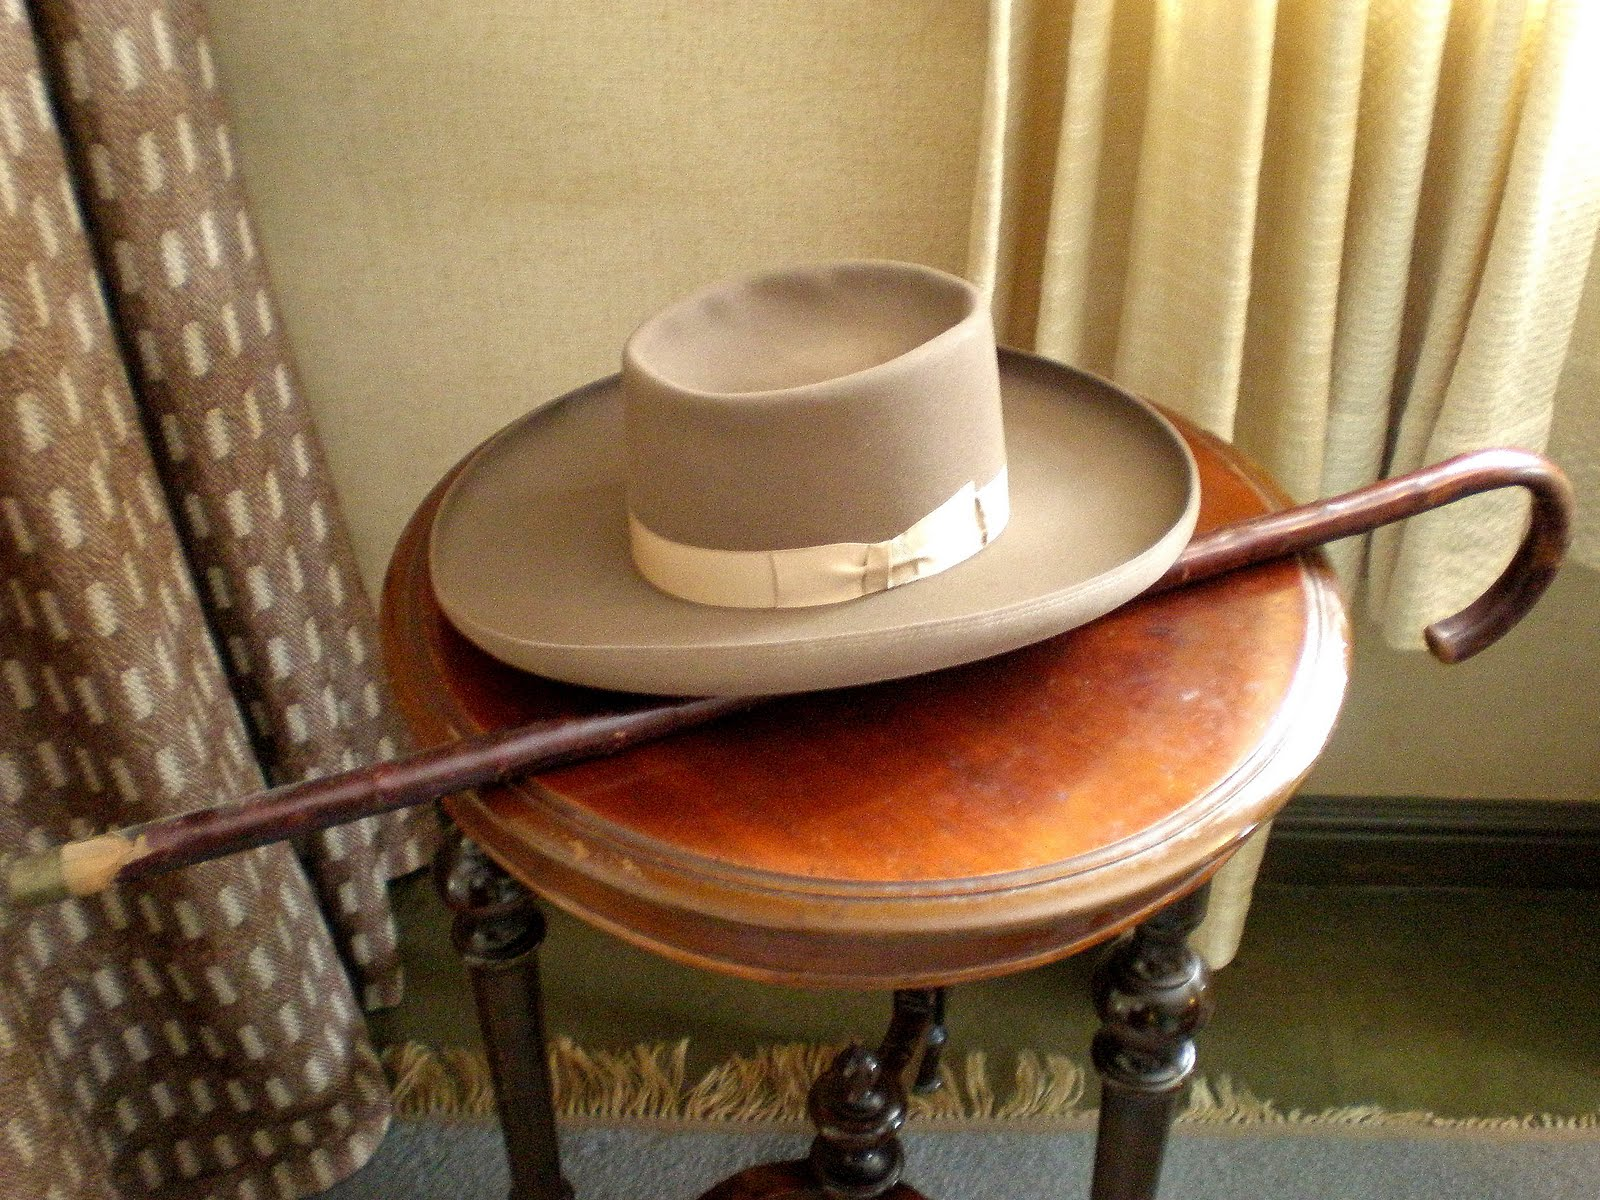 Sibelius's hat and cane at his house-museum, Ainola